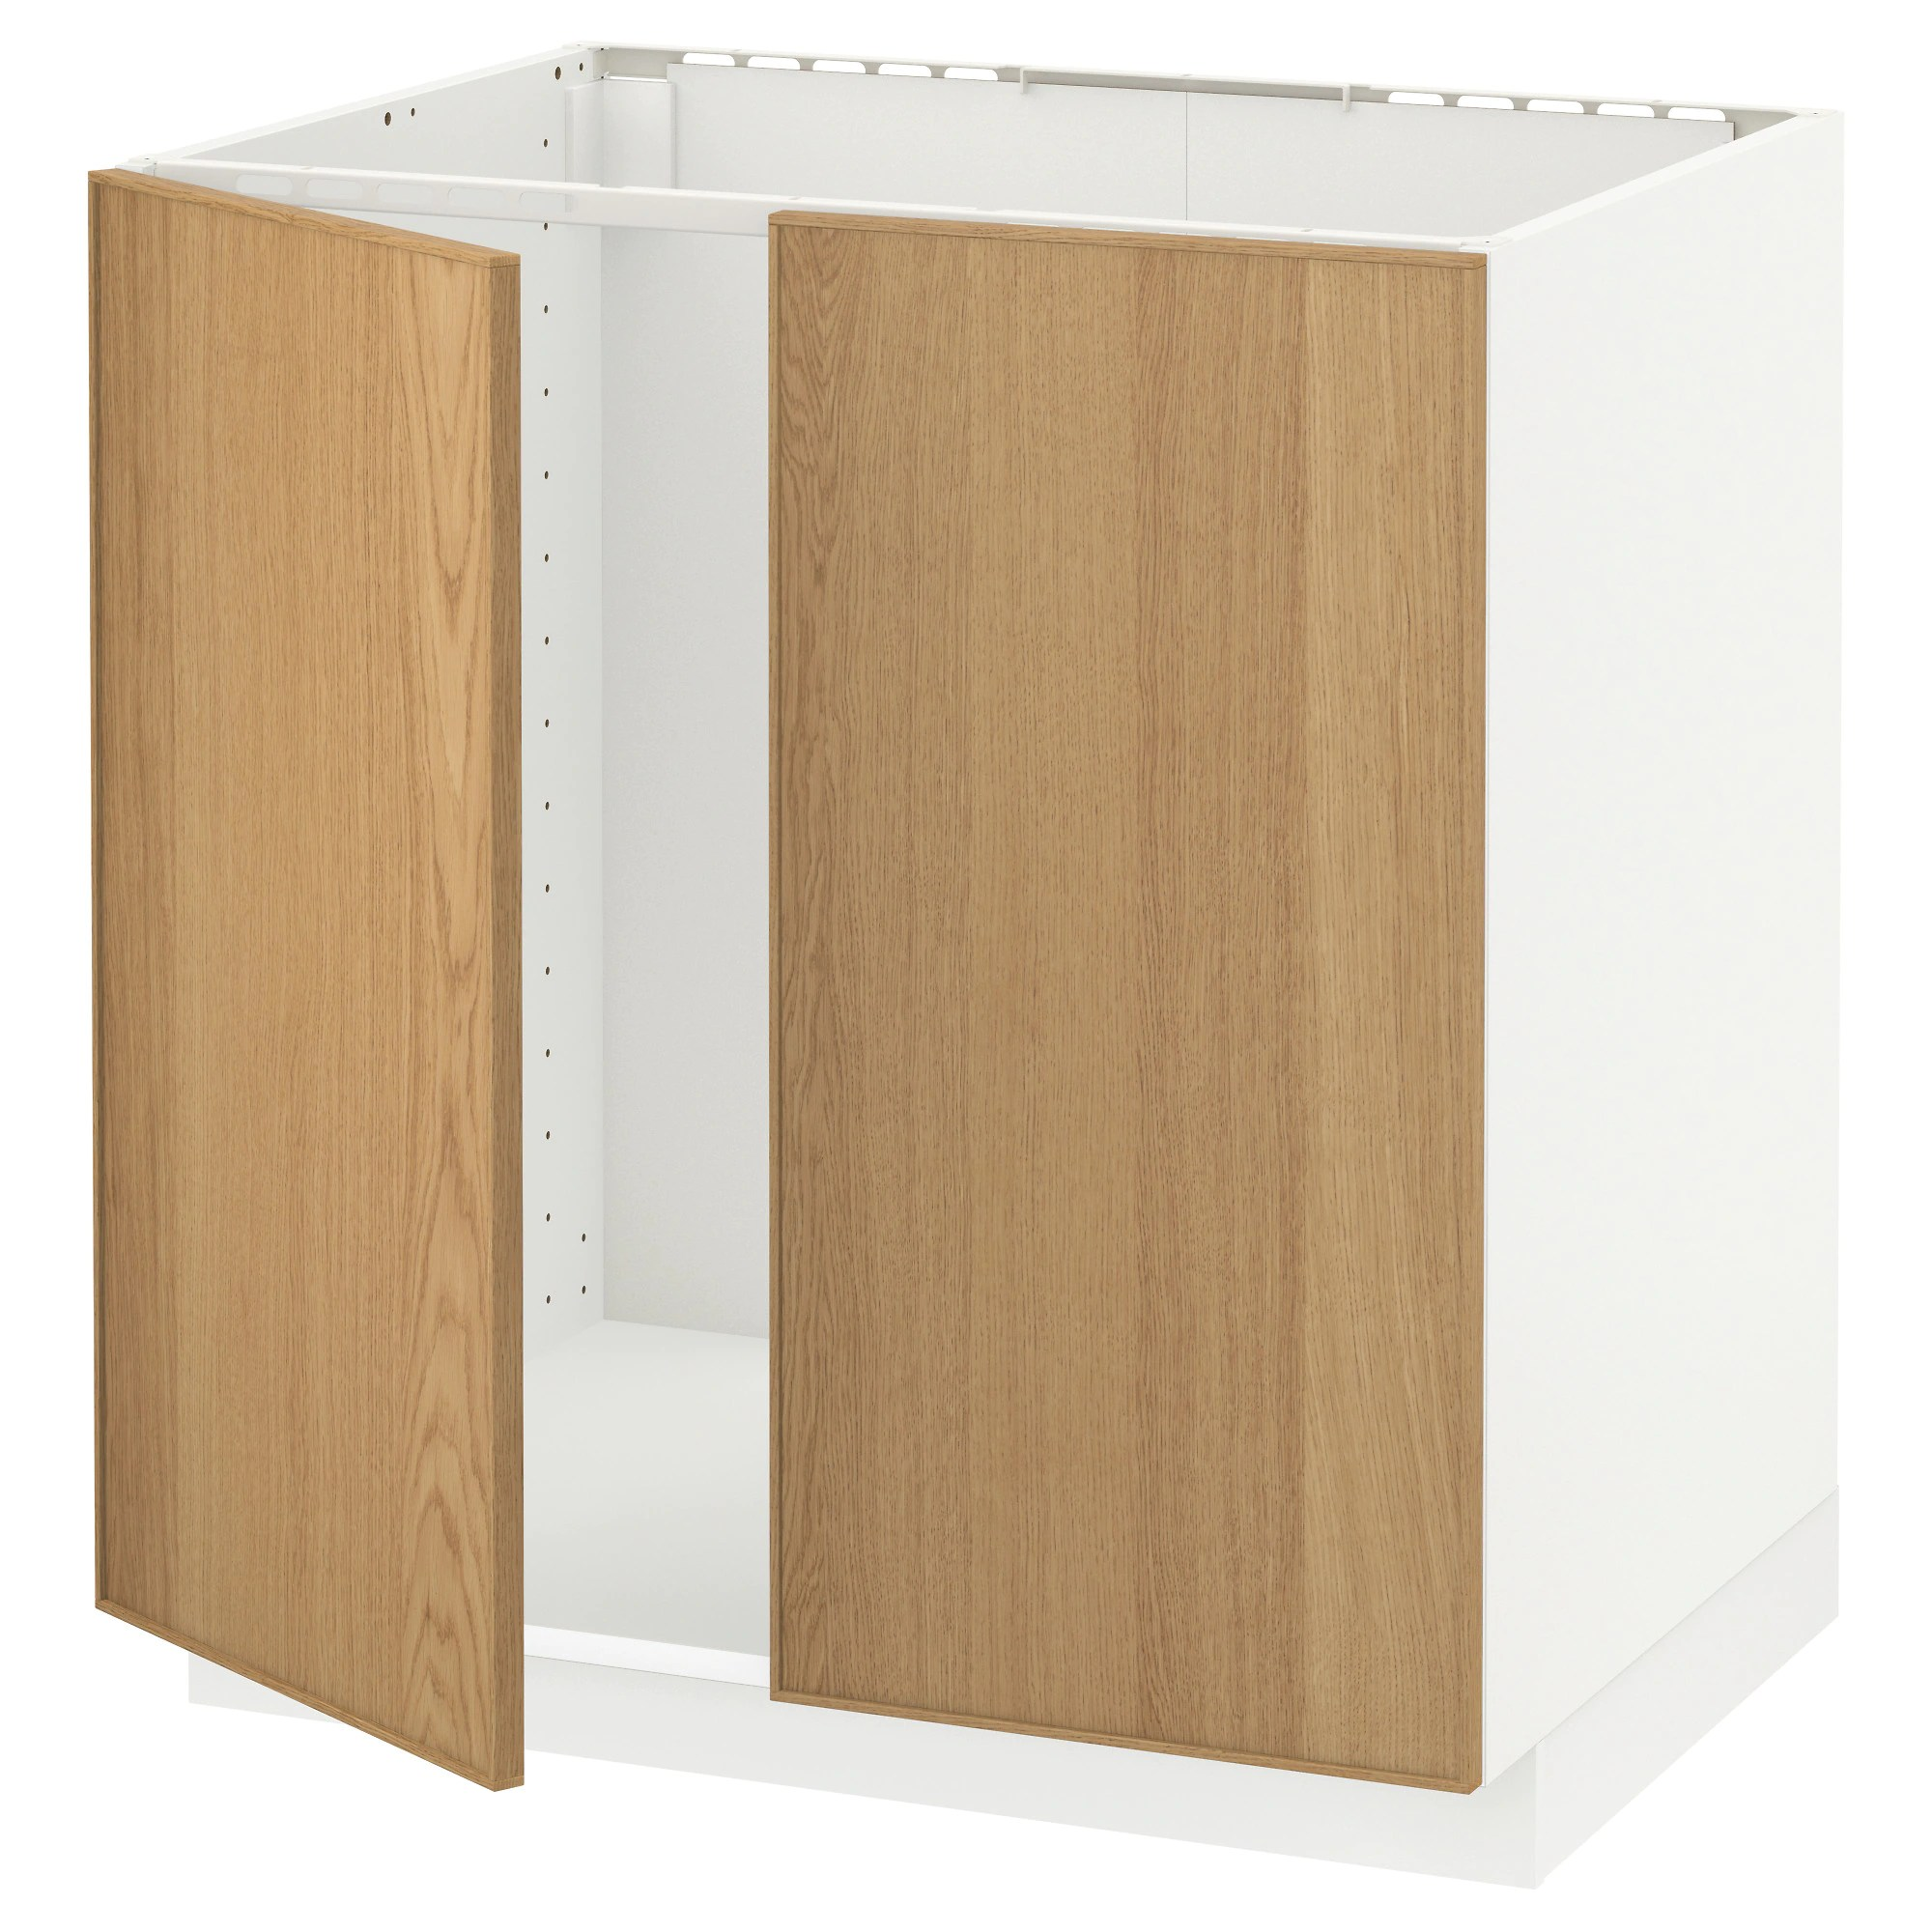 Cucina Ikea Tingsryd Jarsta Metod Base Cabinet For Sink 2 Doors White Lerhyttan Black Stained